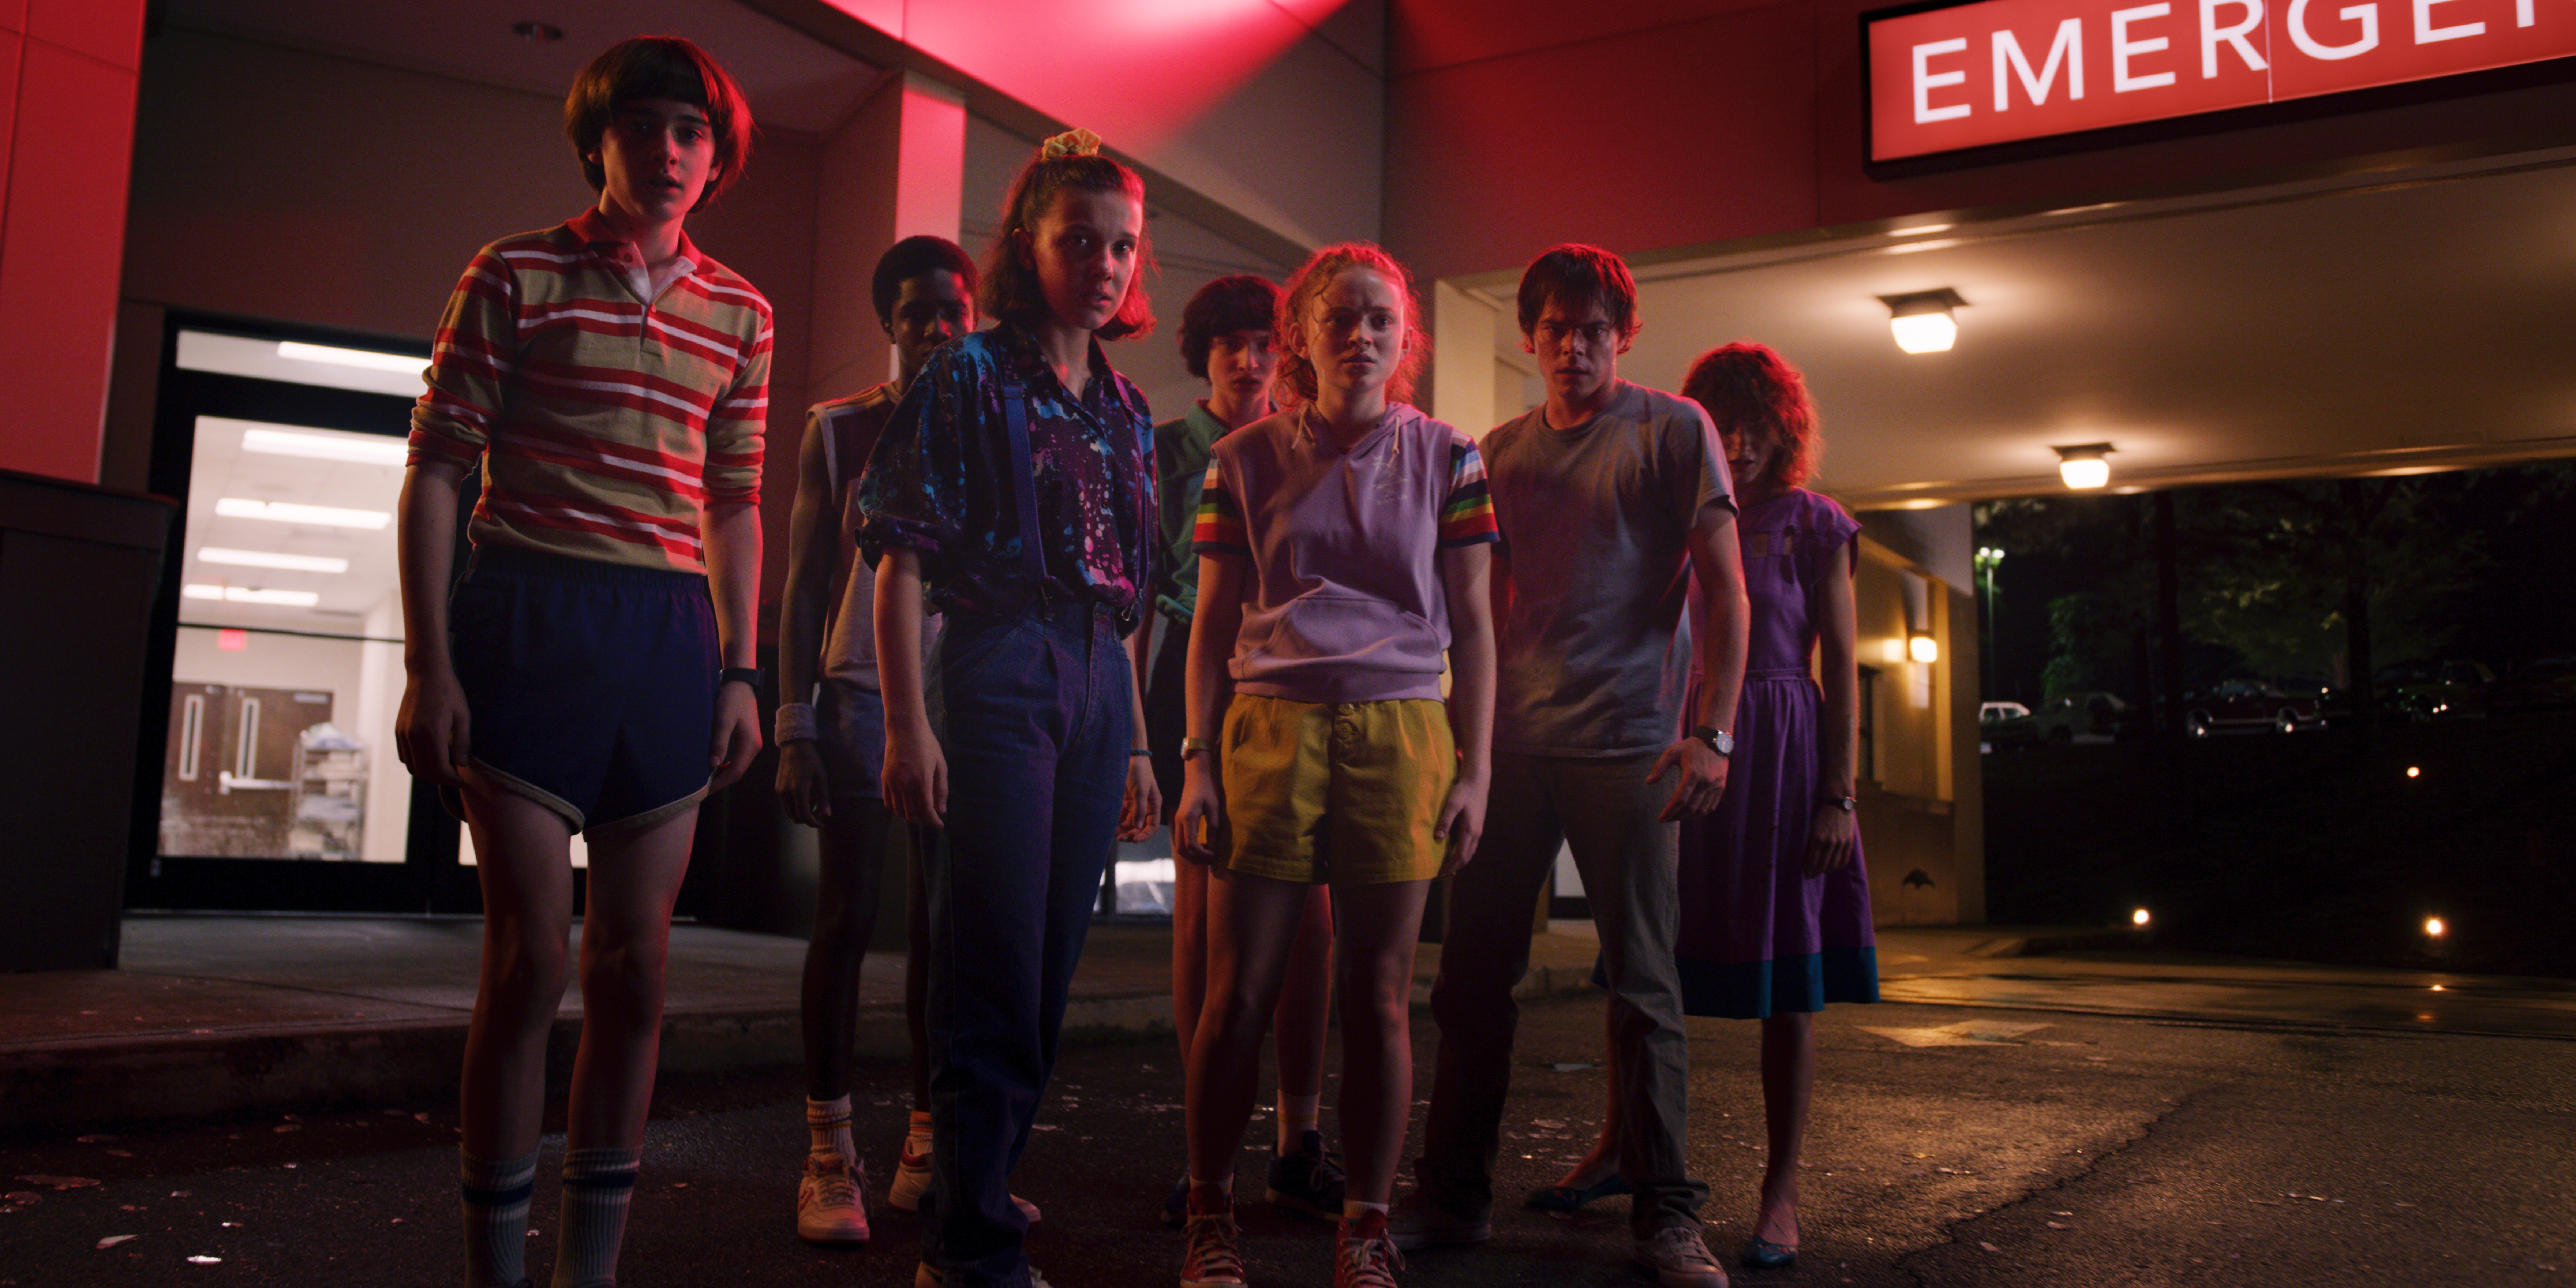 Max & Eleven's Friendship In The 'Stranger Things' Season 3